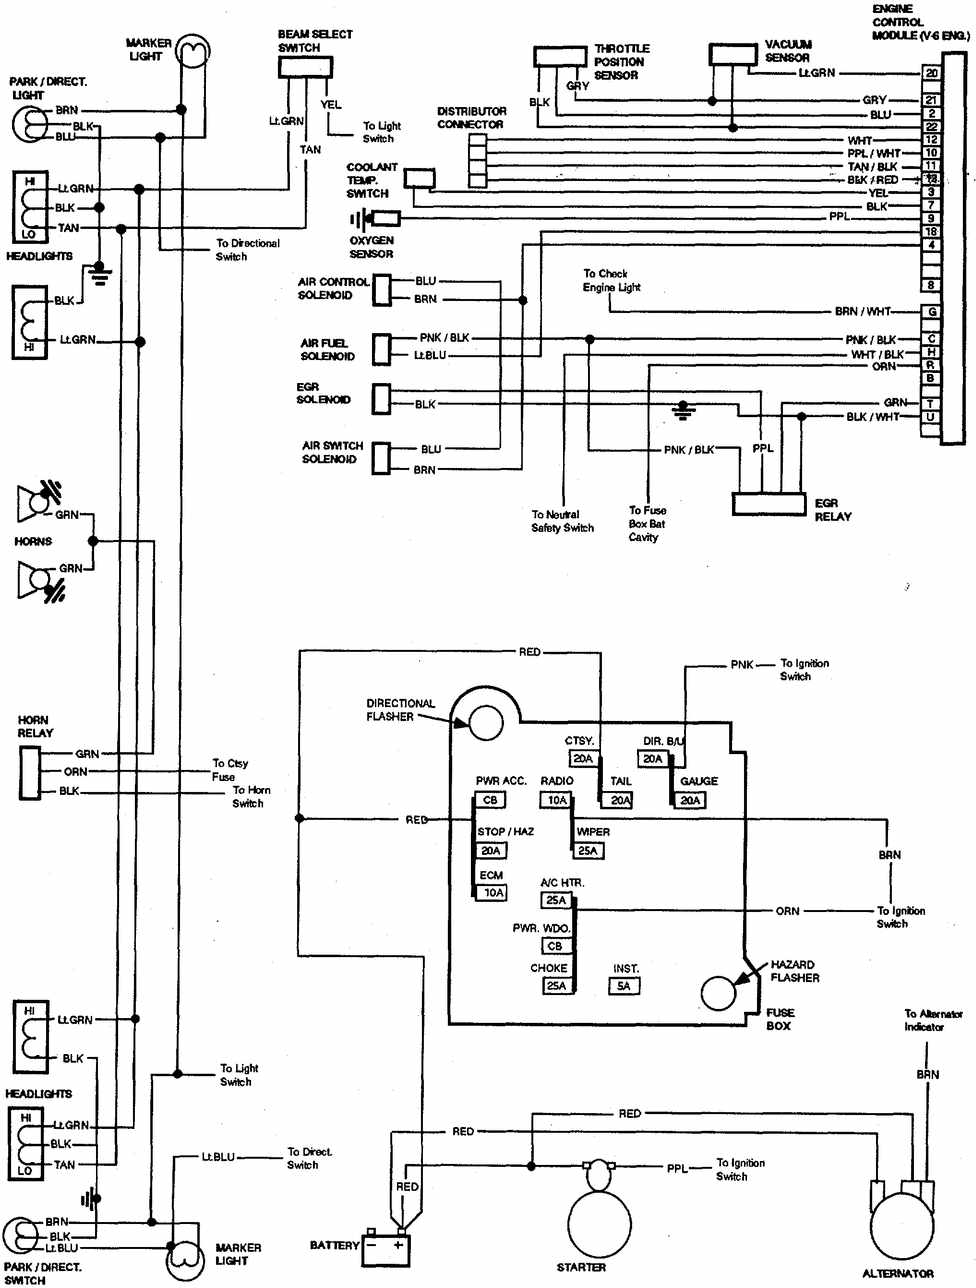 Stereo Wiring Diagram 94 Gmc Sierra Layout Diagrams 1987 Chevy Brake Light Chevrolet V8 Trucks 1981 Electrical 2005 Truck